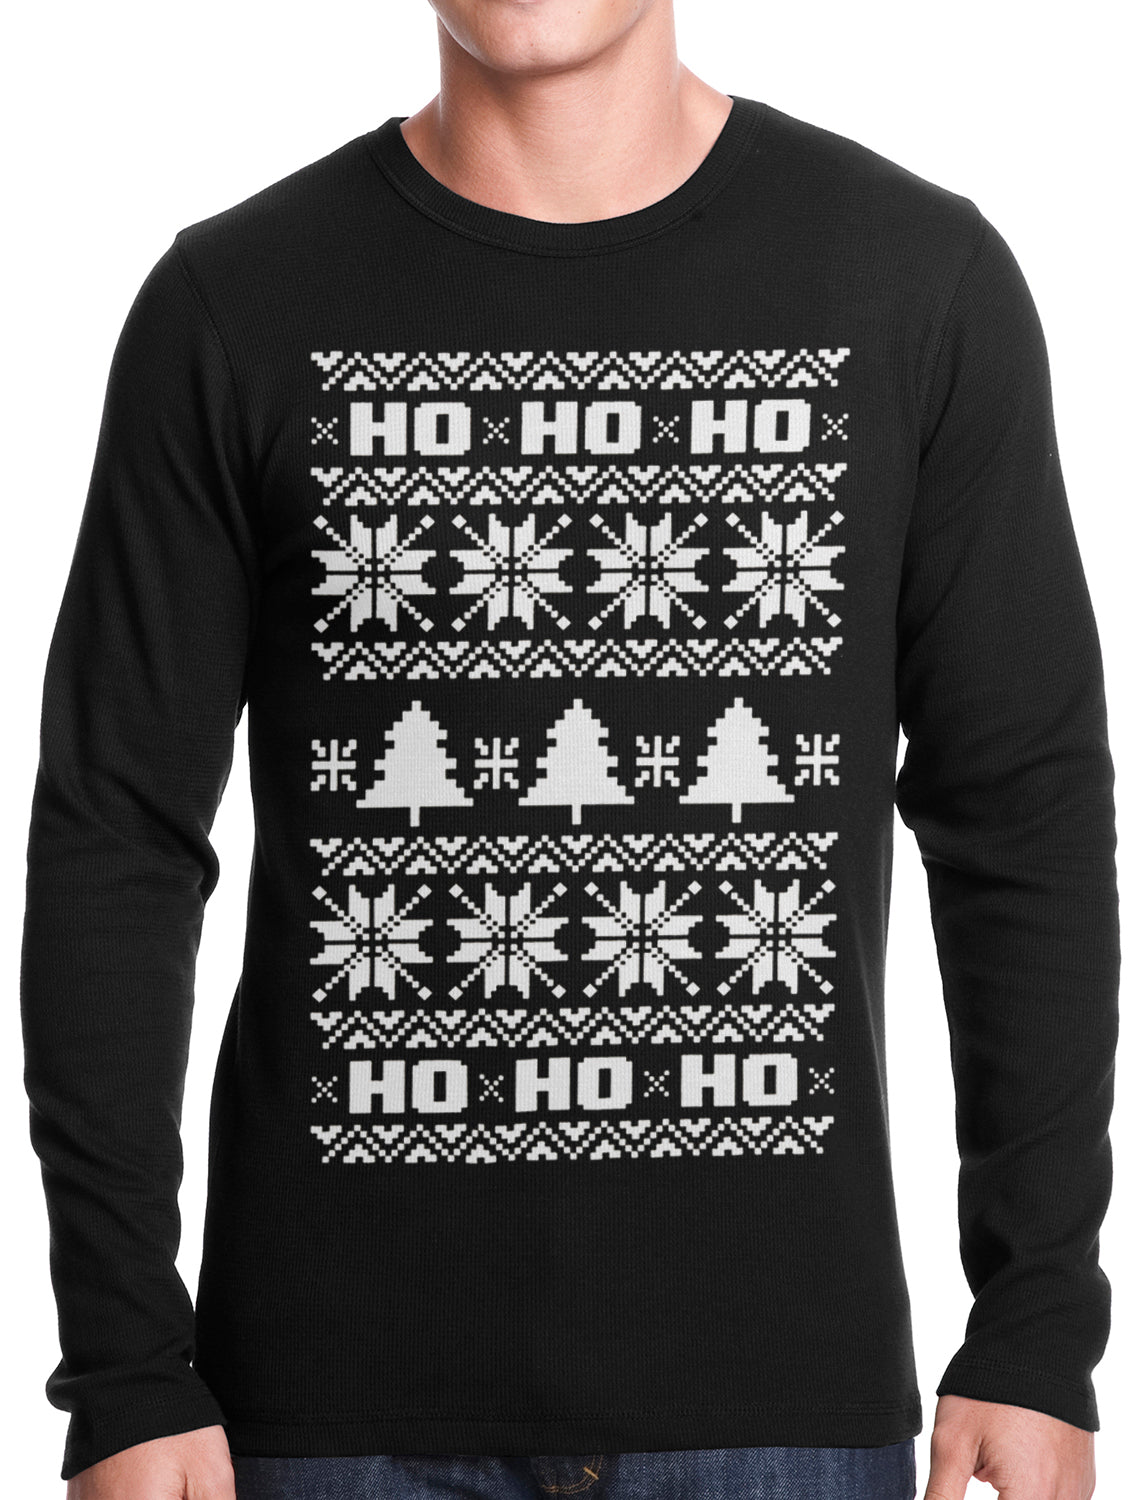 Ugly Christmas Thermal - Snowflake HO HO HO Thermal Shirt